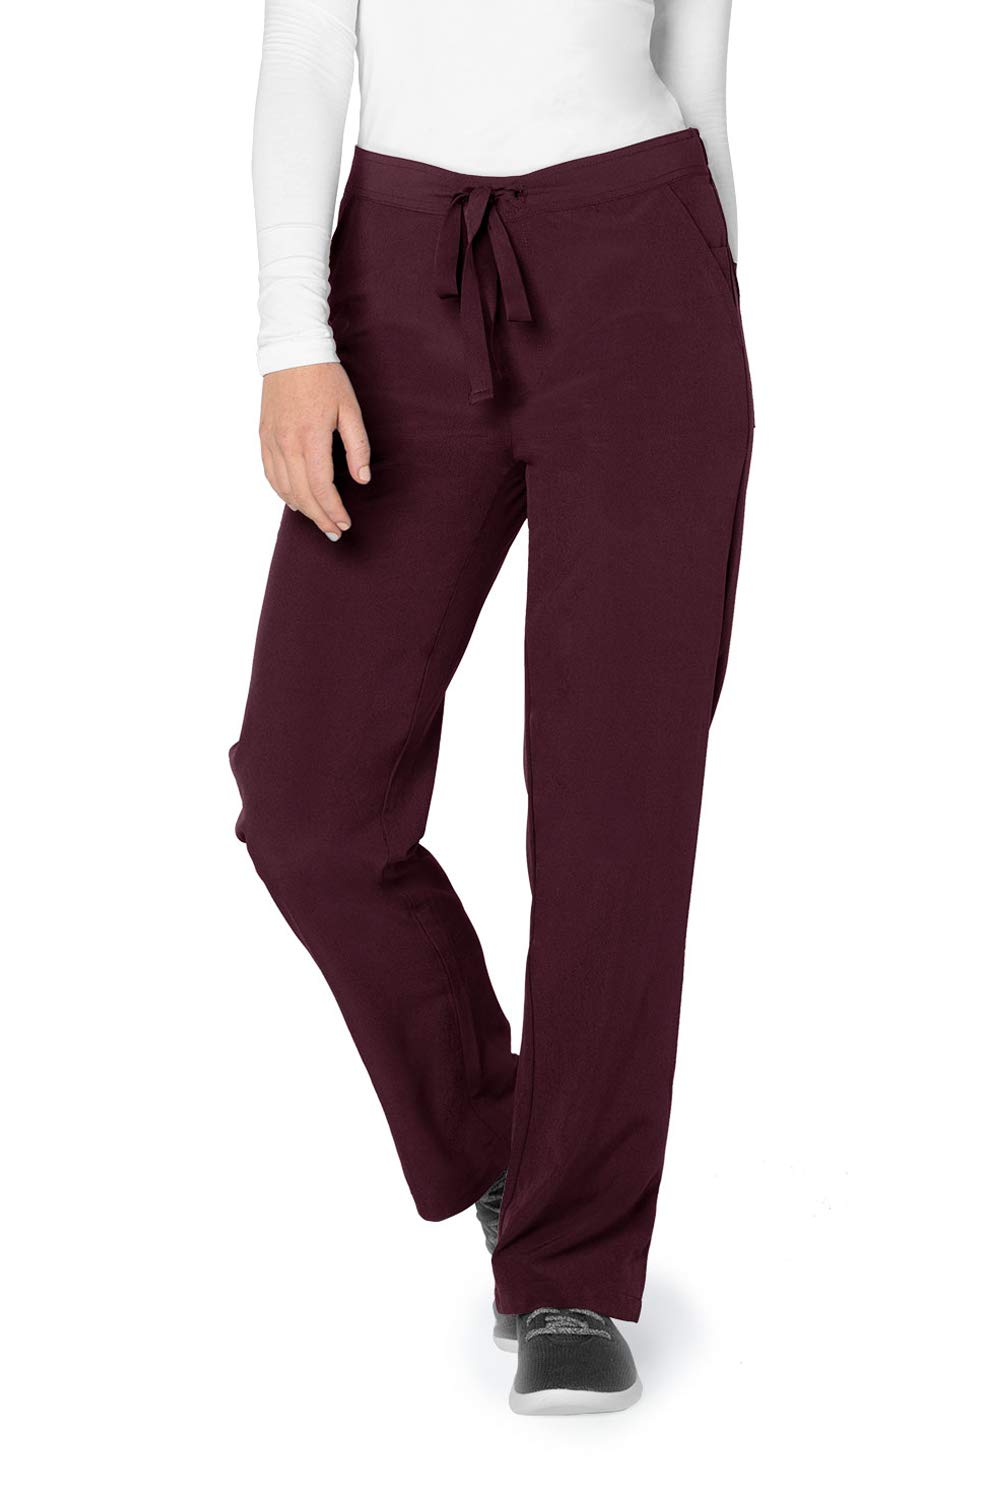 Adar Addition Scrub Set for Women - Mock Wrap Scrub Top & Drawstring Scrub Pants - A9100 - Merlot - XXS